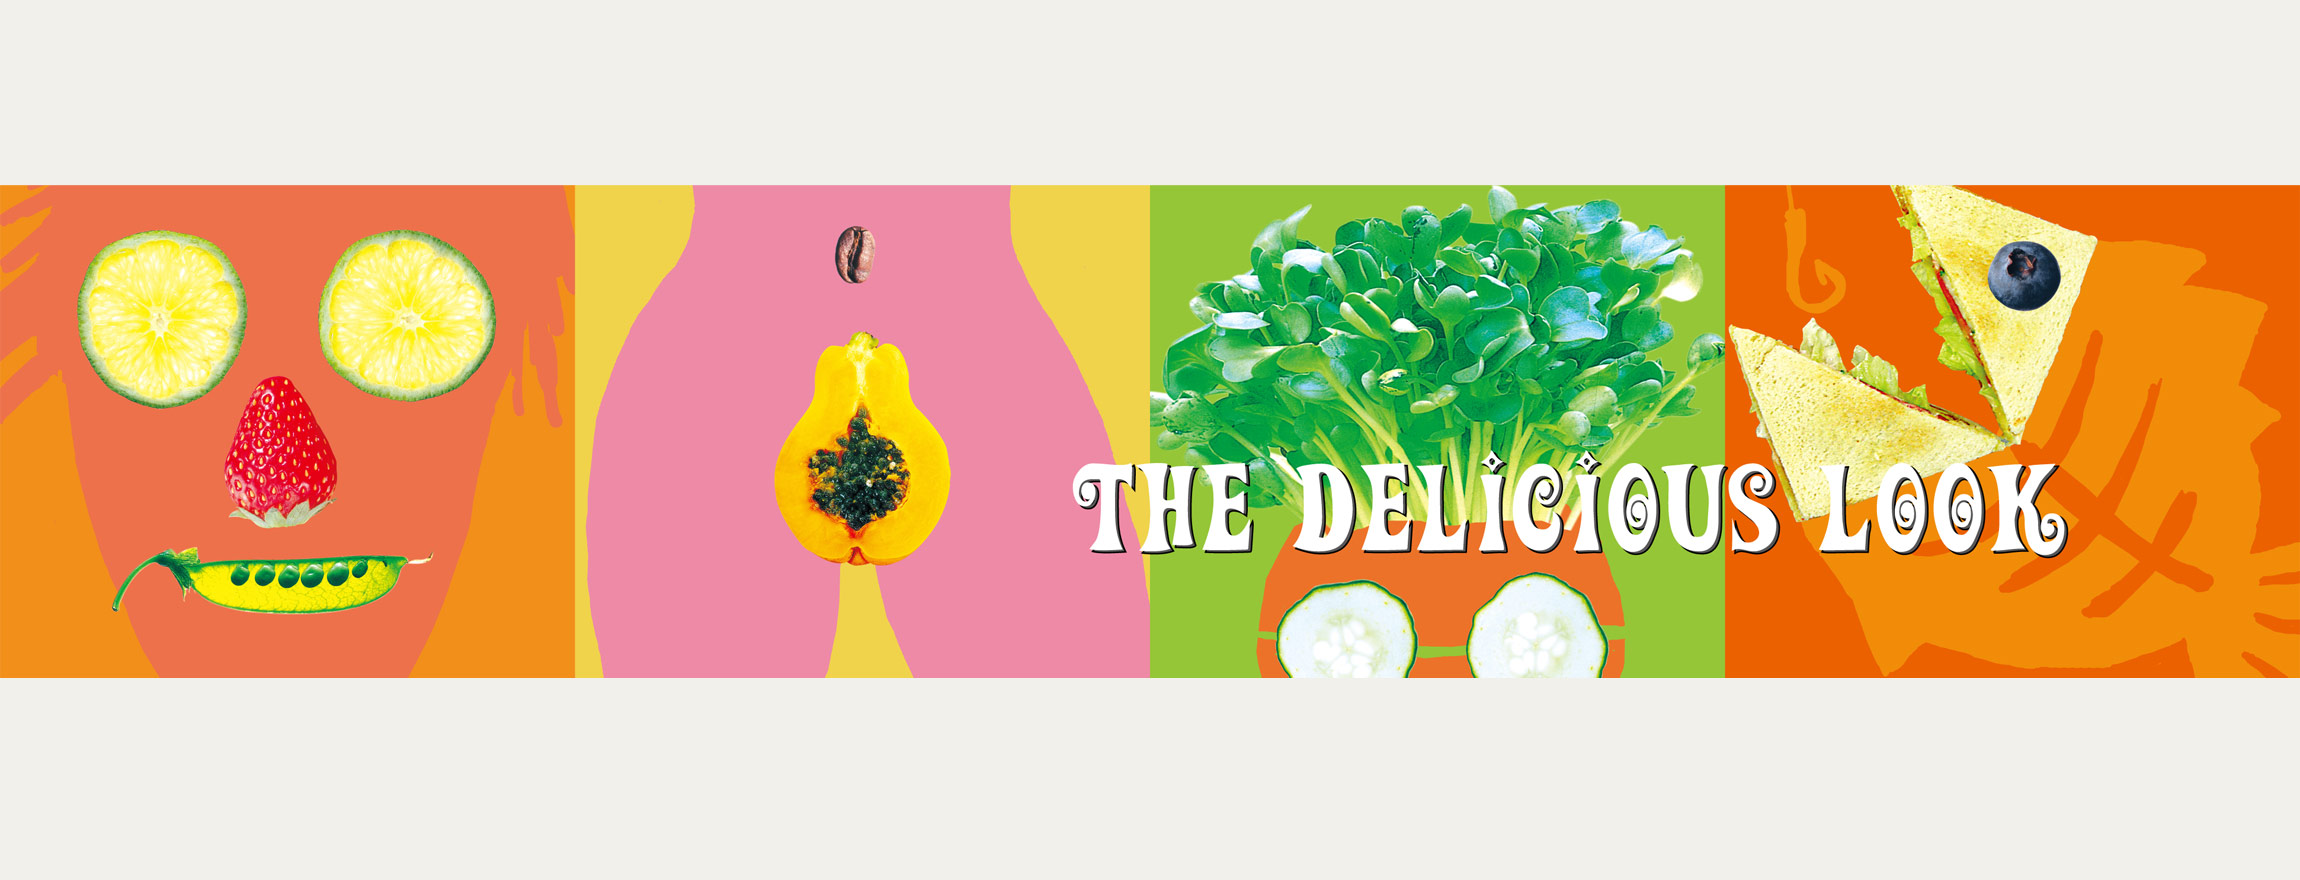 Delicious Look Studio Collection Illustration